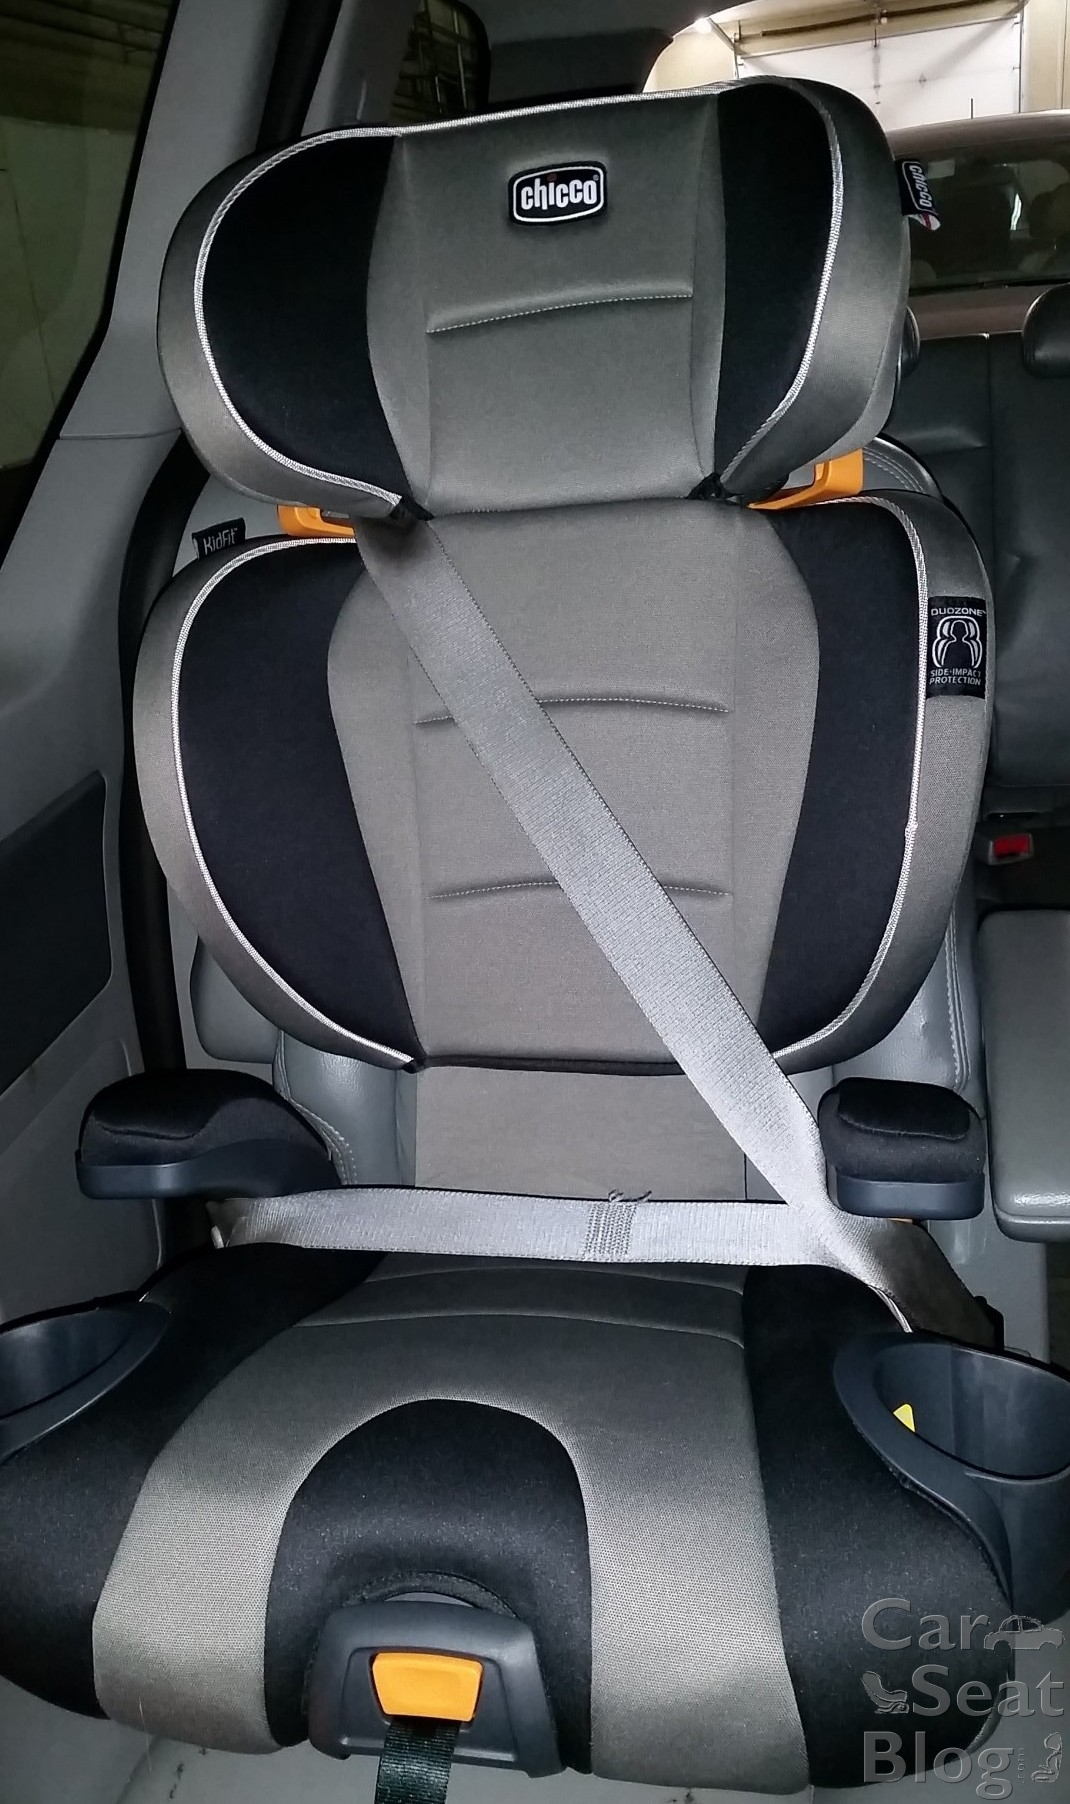 When To Take Headrest Out Of Chicco Car Seat